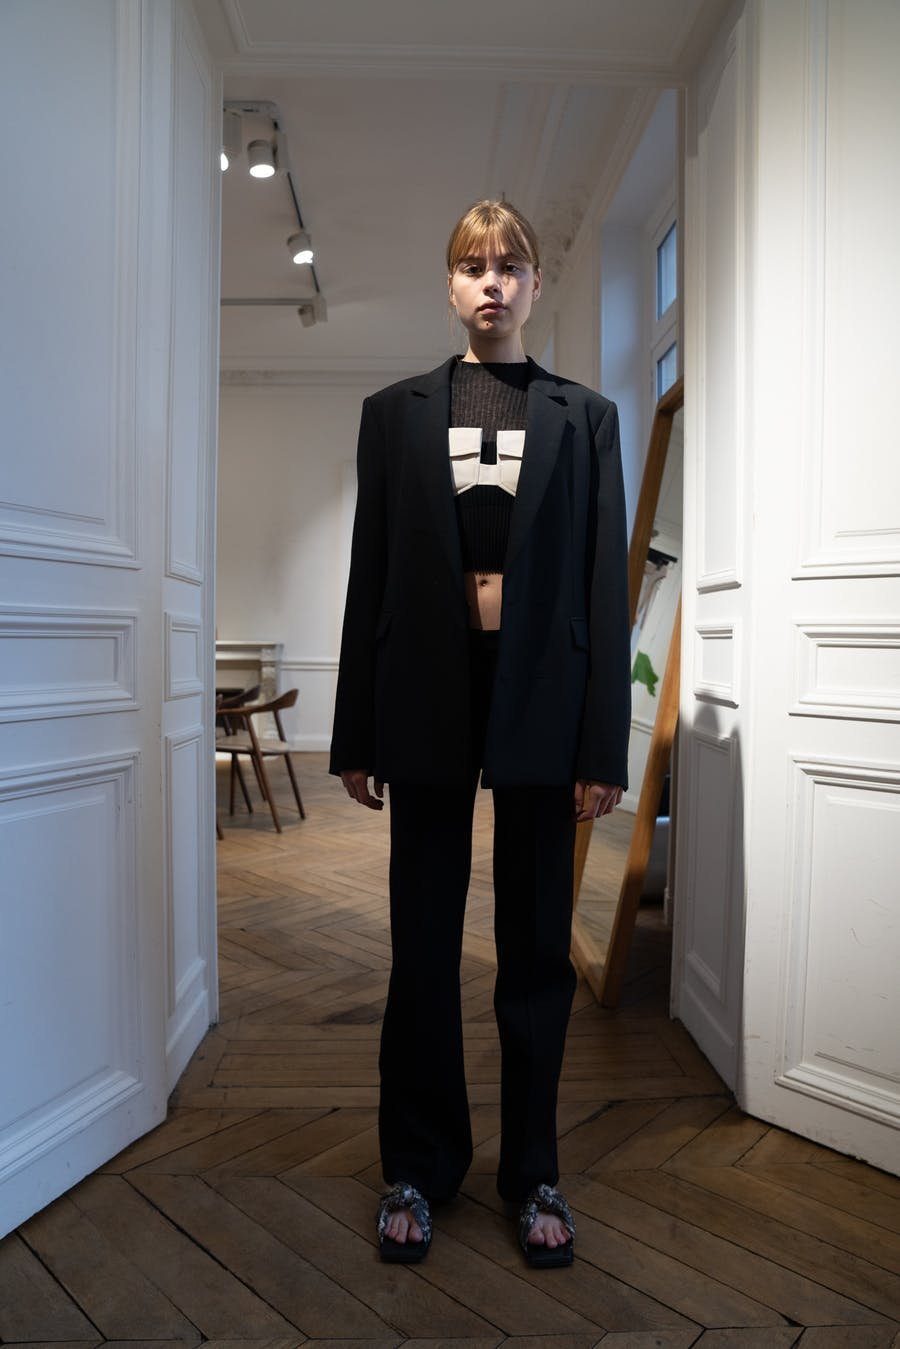 Dion Lee Backstage Oversized Blazer in Black Cotton Rib Tee in Black Cotton Pocket Holster in White Low Rise Pocket Trousers in Black Spring 20 RTW